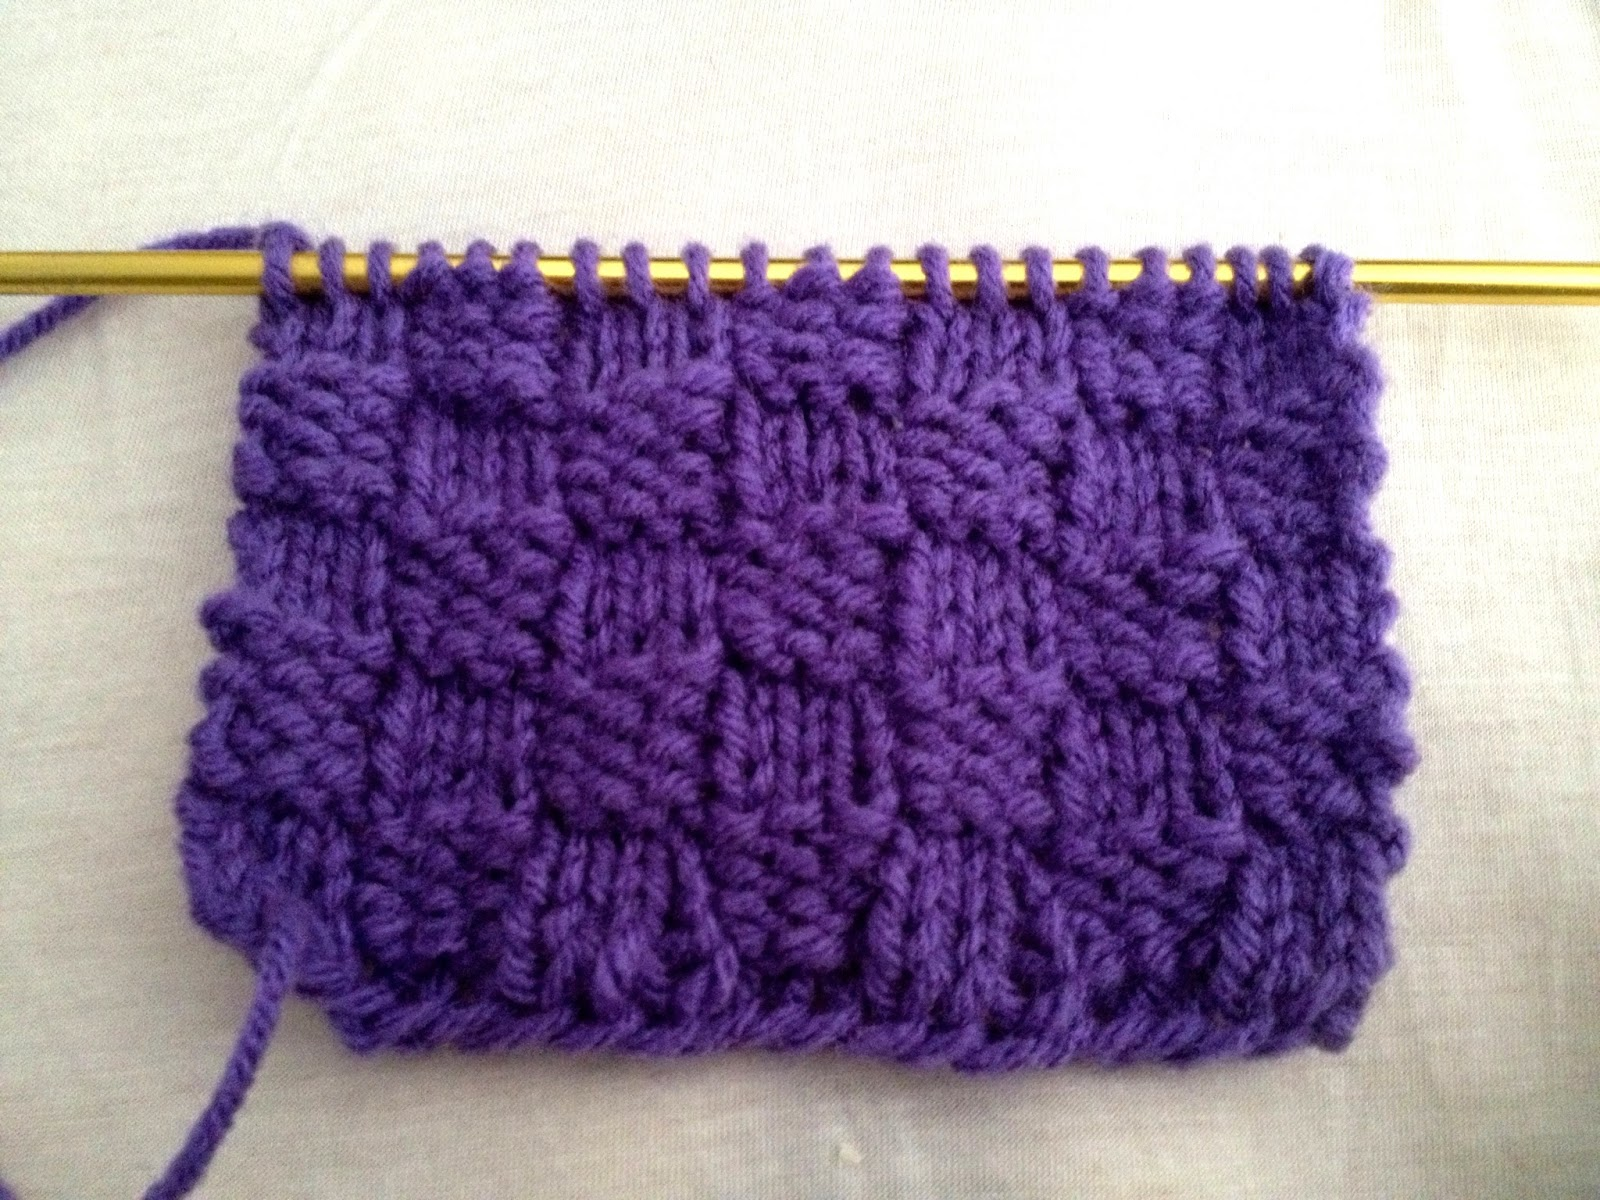 Knit your life how to knit the checker board stitch suggestions for newer knitters this is a great pattern to practice purling and moving your yarn forwardbackward when switching from purling to knitting dt1010fo